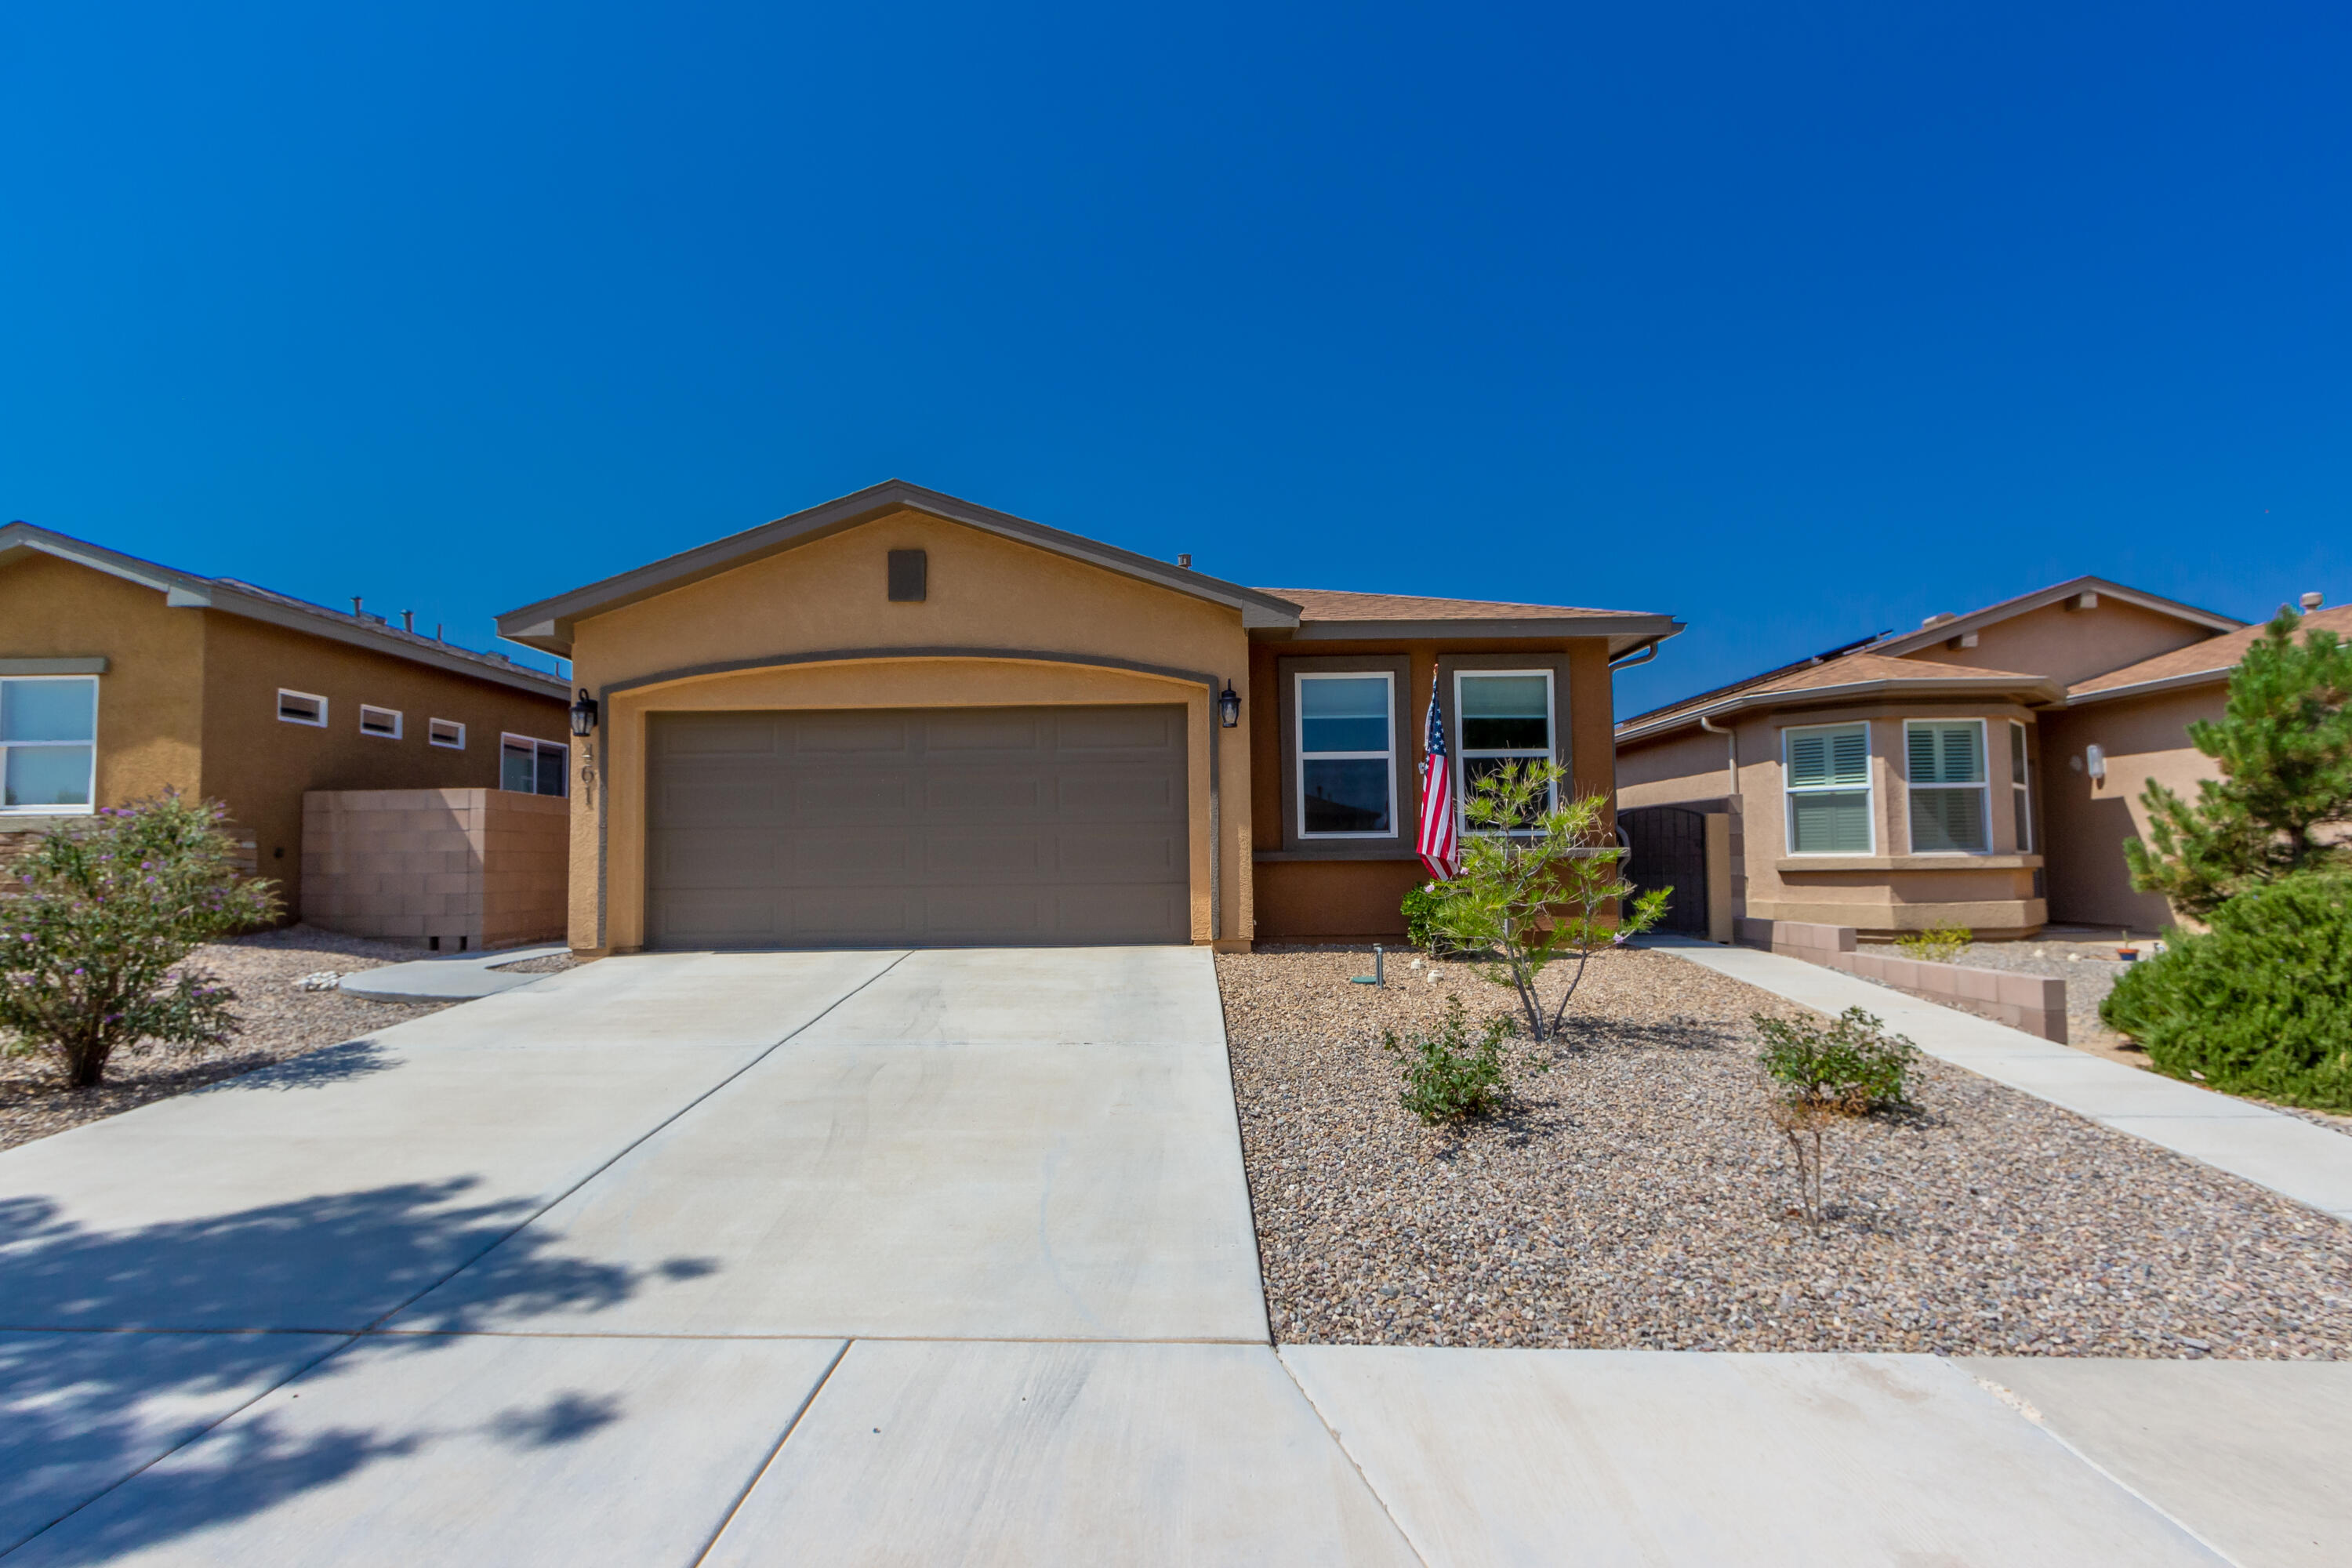 Super affordable 1405 sq. ft. home w/an extra sunroom for that little ''extra'' space. Sunroom is not heated/cooled but is comfortable year-round w/casement windows that open out. Completely landscaped, great window coverings & washer/dryer/fridge all stay to make it move-in ready w/no extra expenses! Charming side courtyard welcomes you...large kitchen island for extra storage & seating. Open plan w/split master & bedroom #2. Living room has beautiful easy-care LVT. Back yard is private w/views of El Cerro de Los Lunas. Walking path to clubhouse amenities is a great location to enjoy all the wonderful lifestyle perks of this award-winning Active Adult Community! Don't miss this affordable home...come see it today!